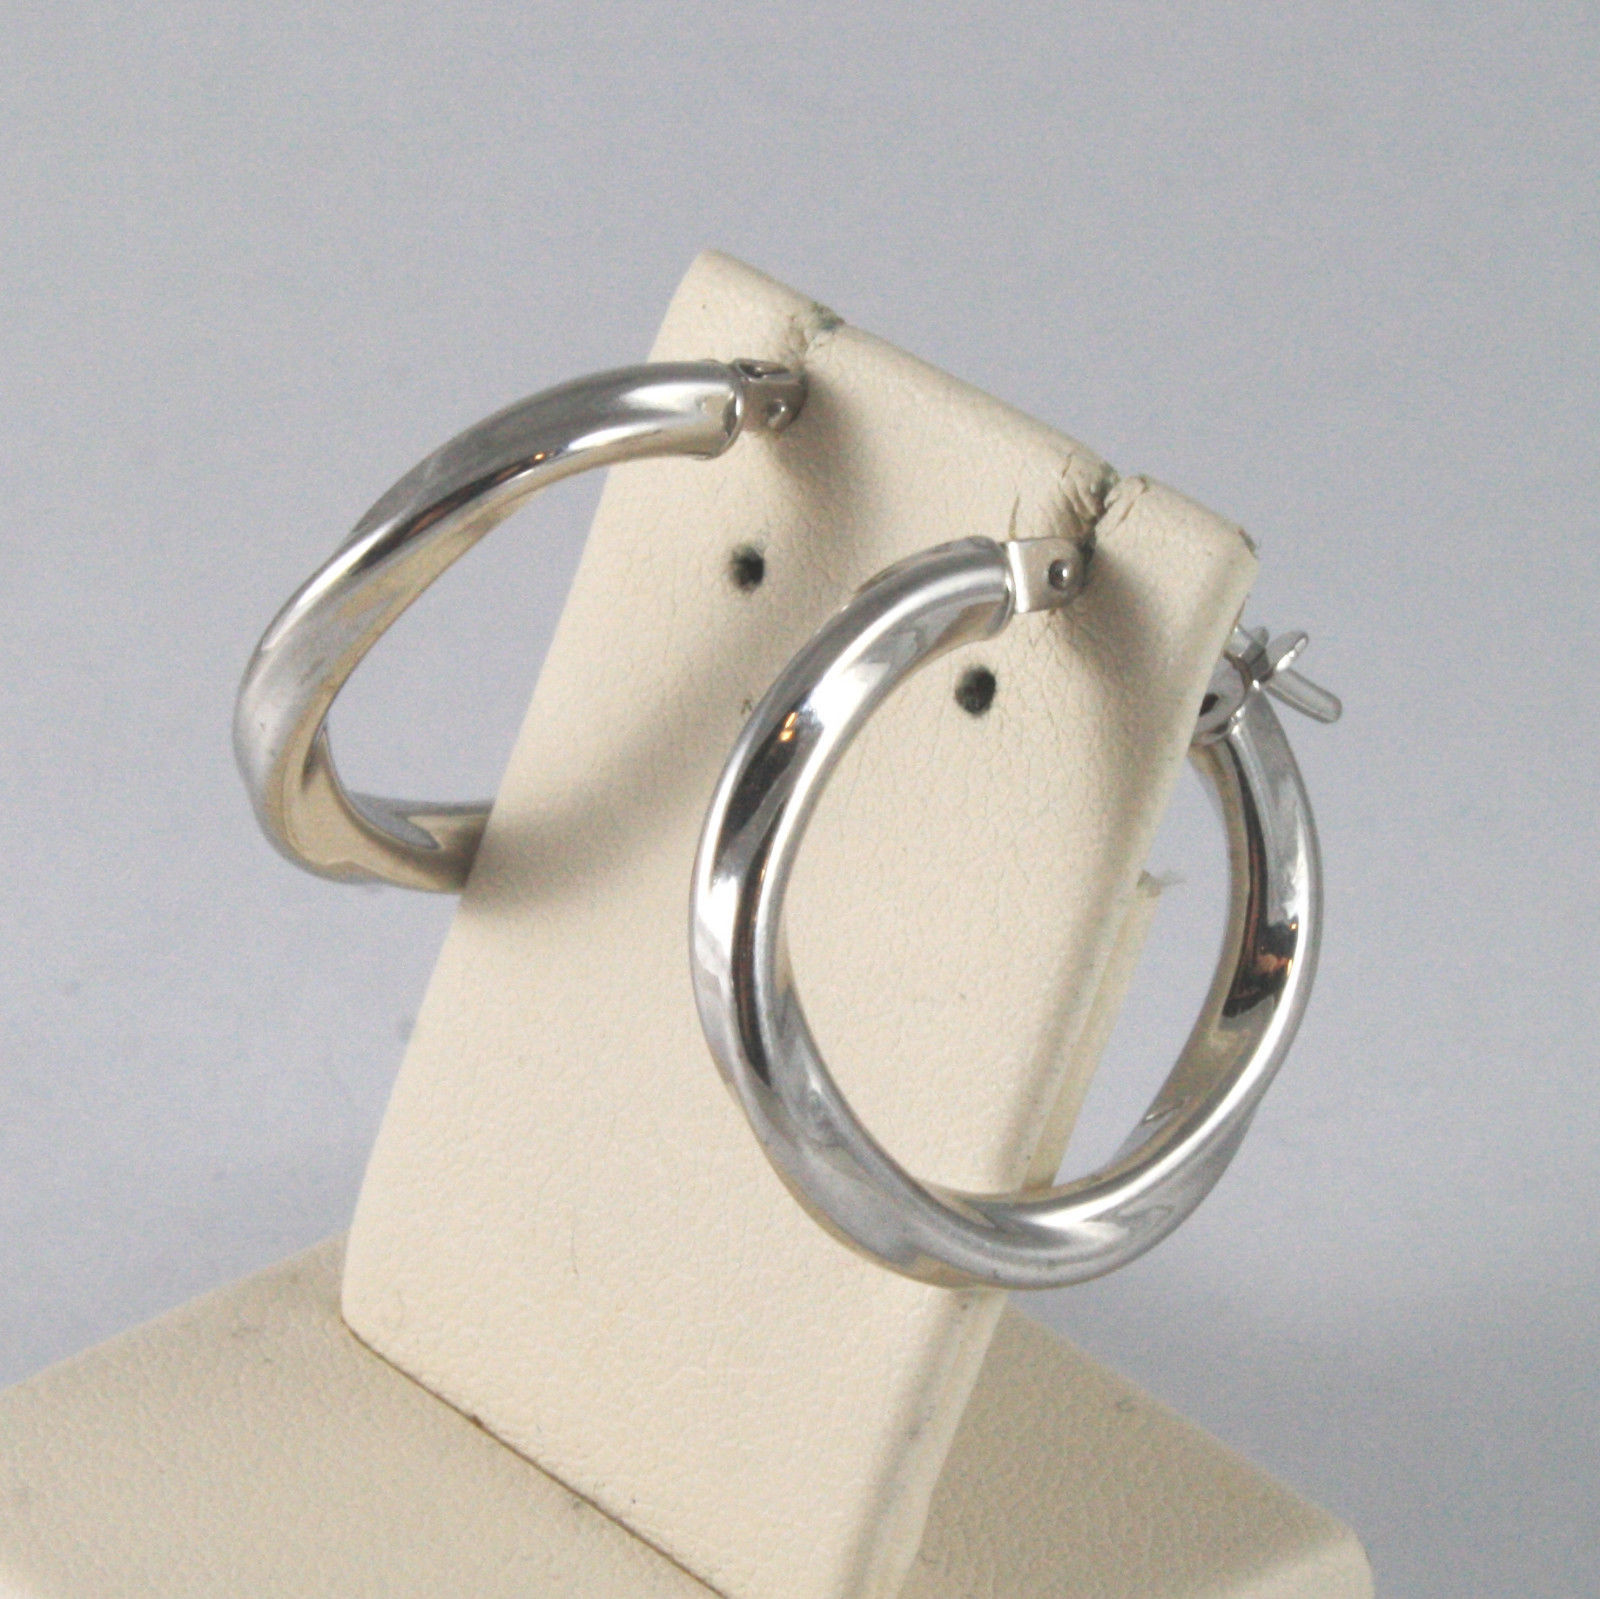 SOLID 18KT. WHITE GOLD CIRCLE, TWISTED EARRINGS DIAMETER 0,87 IN MADE IN ITALY